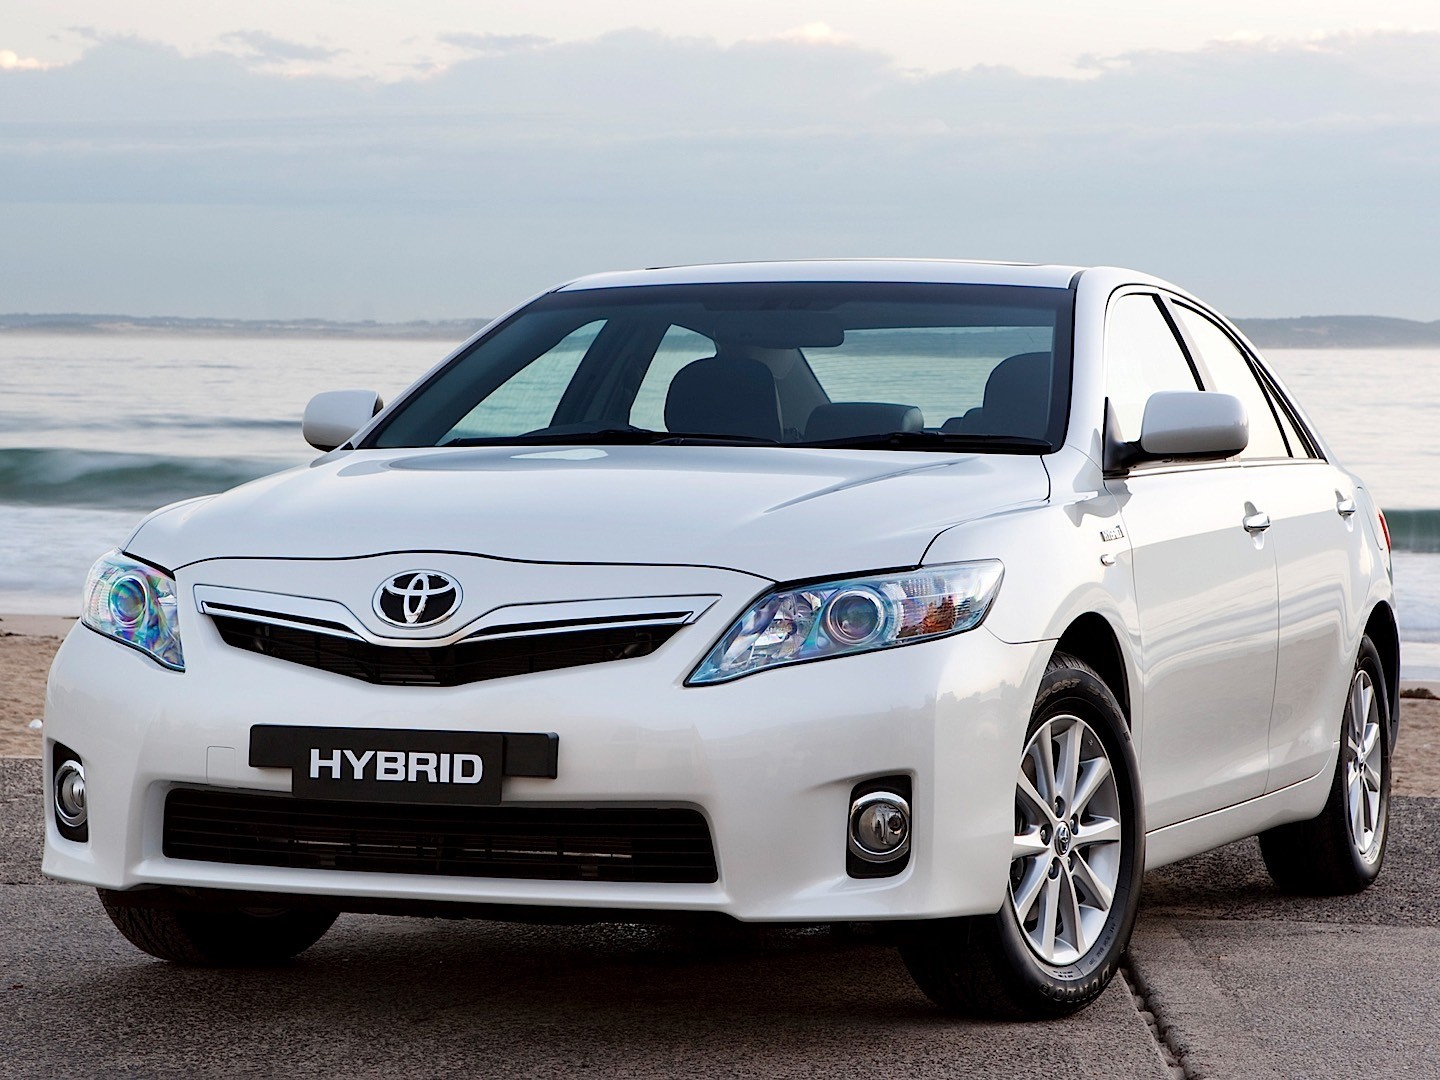 toyota camry hybrid 2014 car review 2014 toyota camry hybrid driving toyota camry hybrid 2014. Black Bedroom Furniture Sets. Home Design Ideas